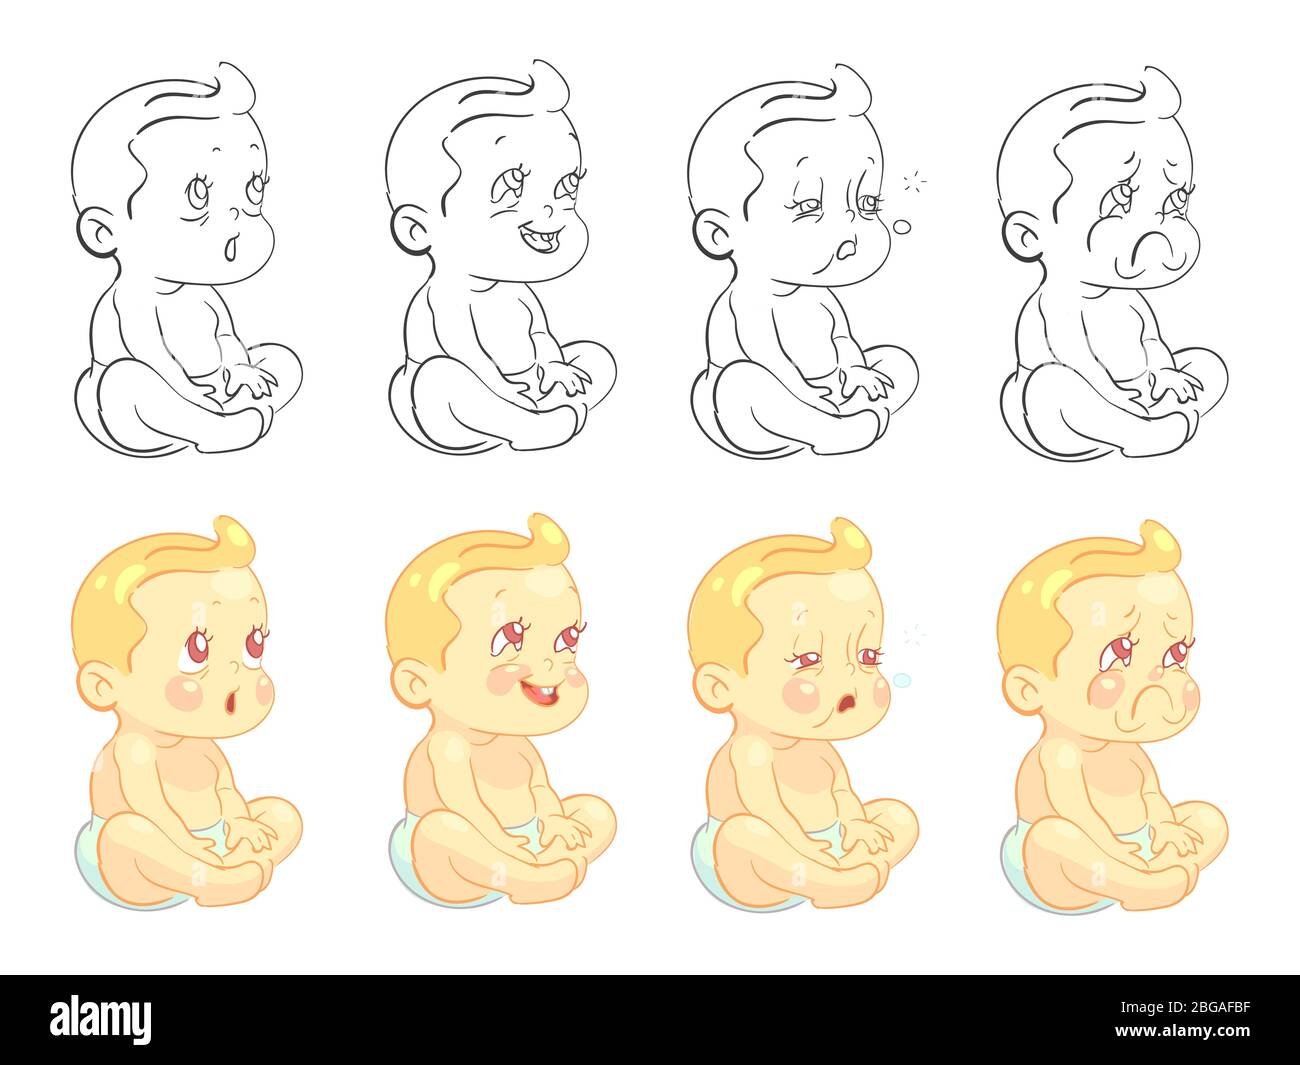 Emotional Cute Baby Coloring Page With Samples Isolated On White Background Vector Baby Boy Funny Face Happy Child Character Expression Illustration Stock Vector Image Art Alamy